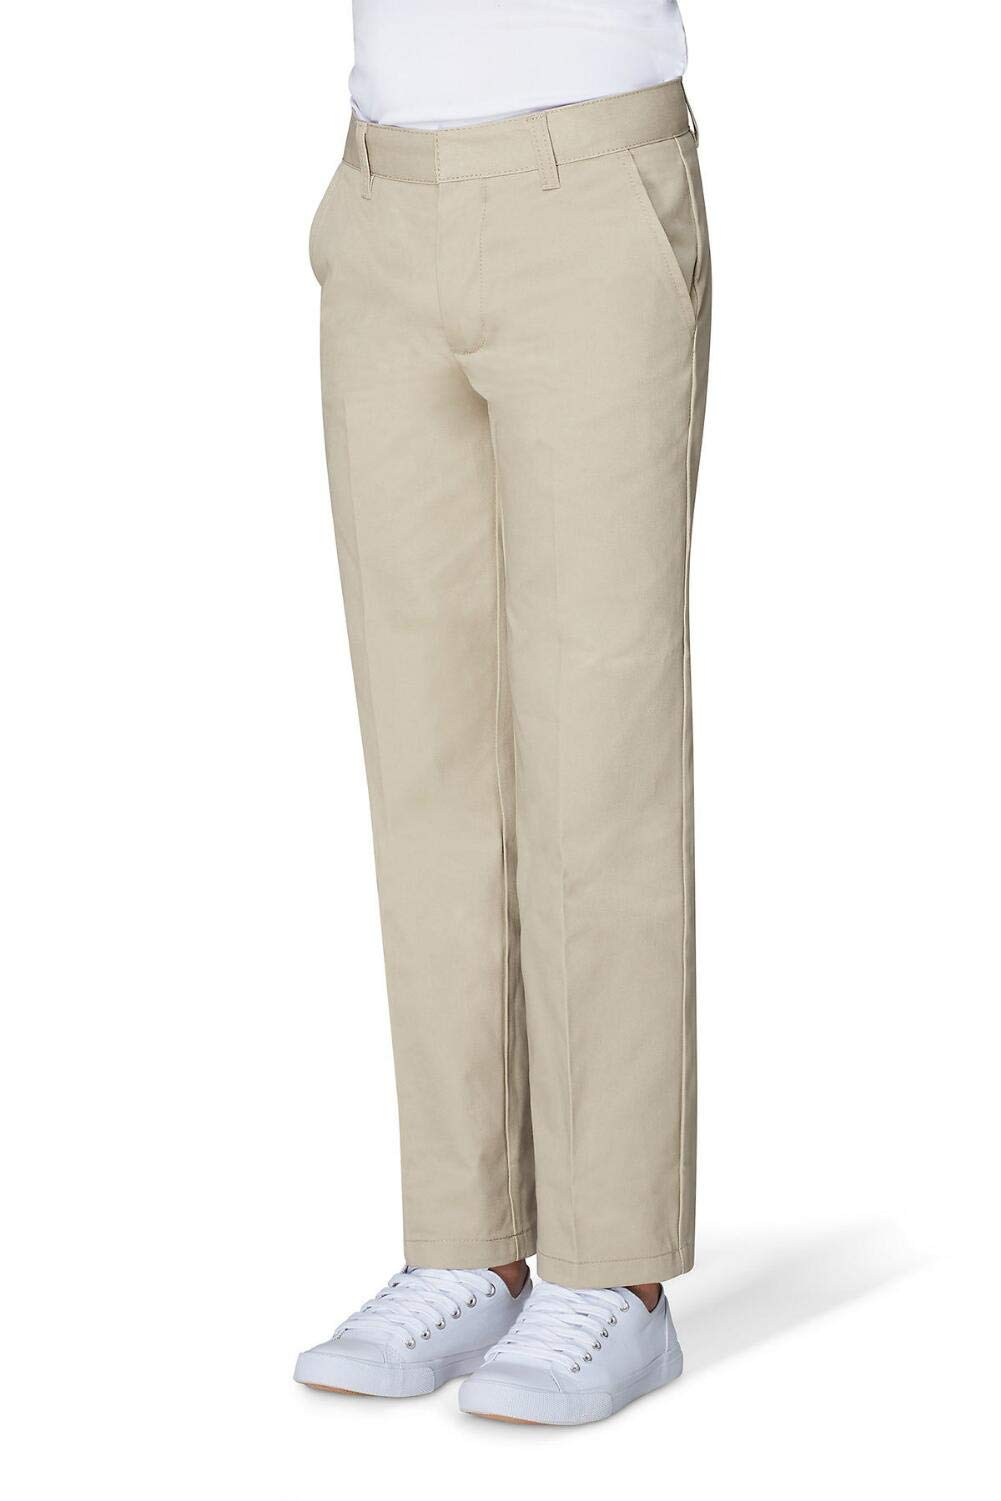 French Toast Little Boys' Flat Front Double Knee Pant with Adjustable Waist, Khaki, 6